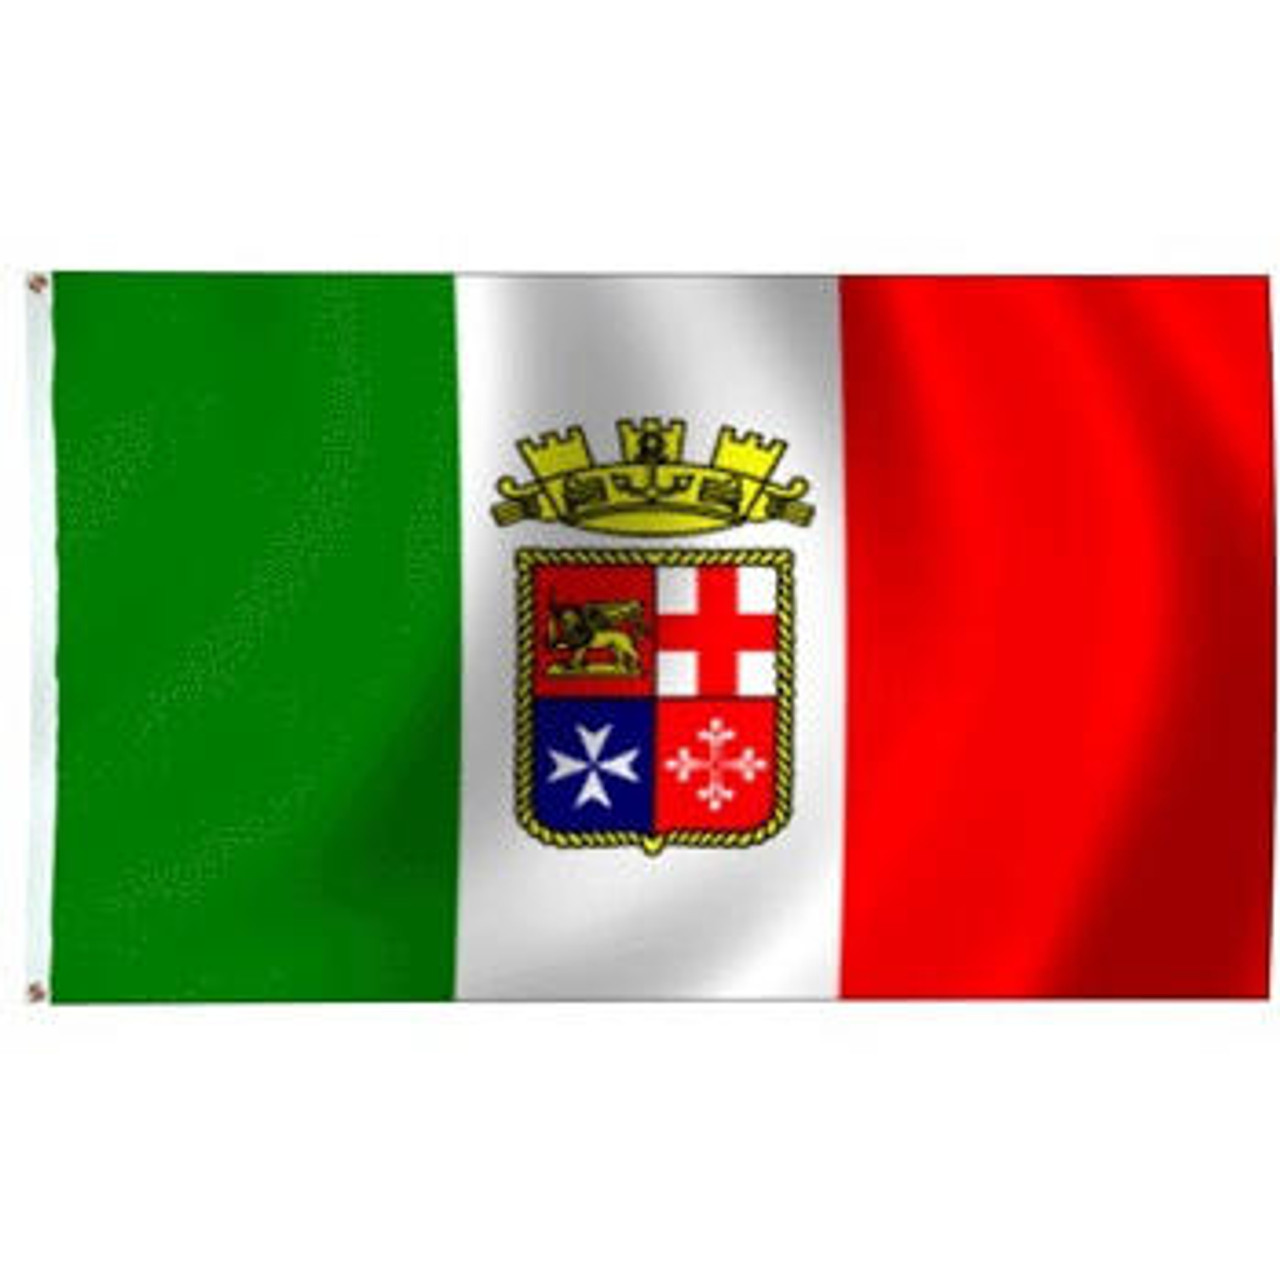 Italian Ensign Flag with shield at center divided into four squares and naval crown on top